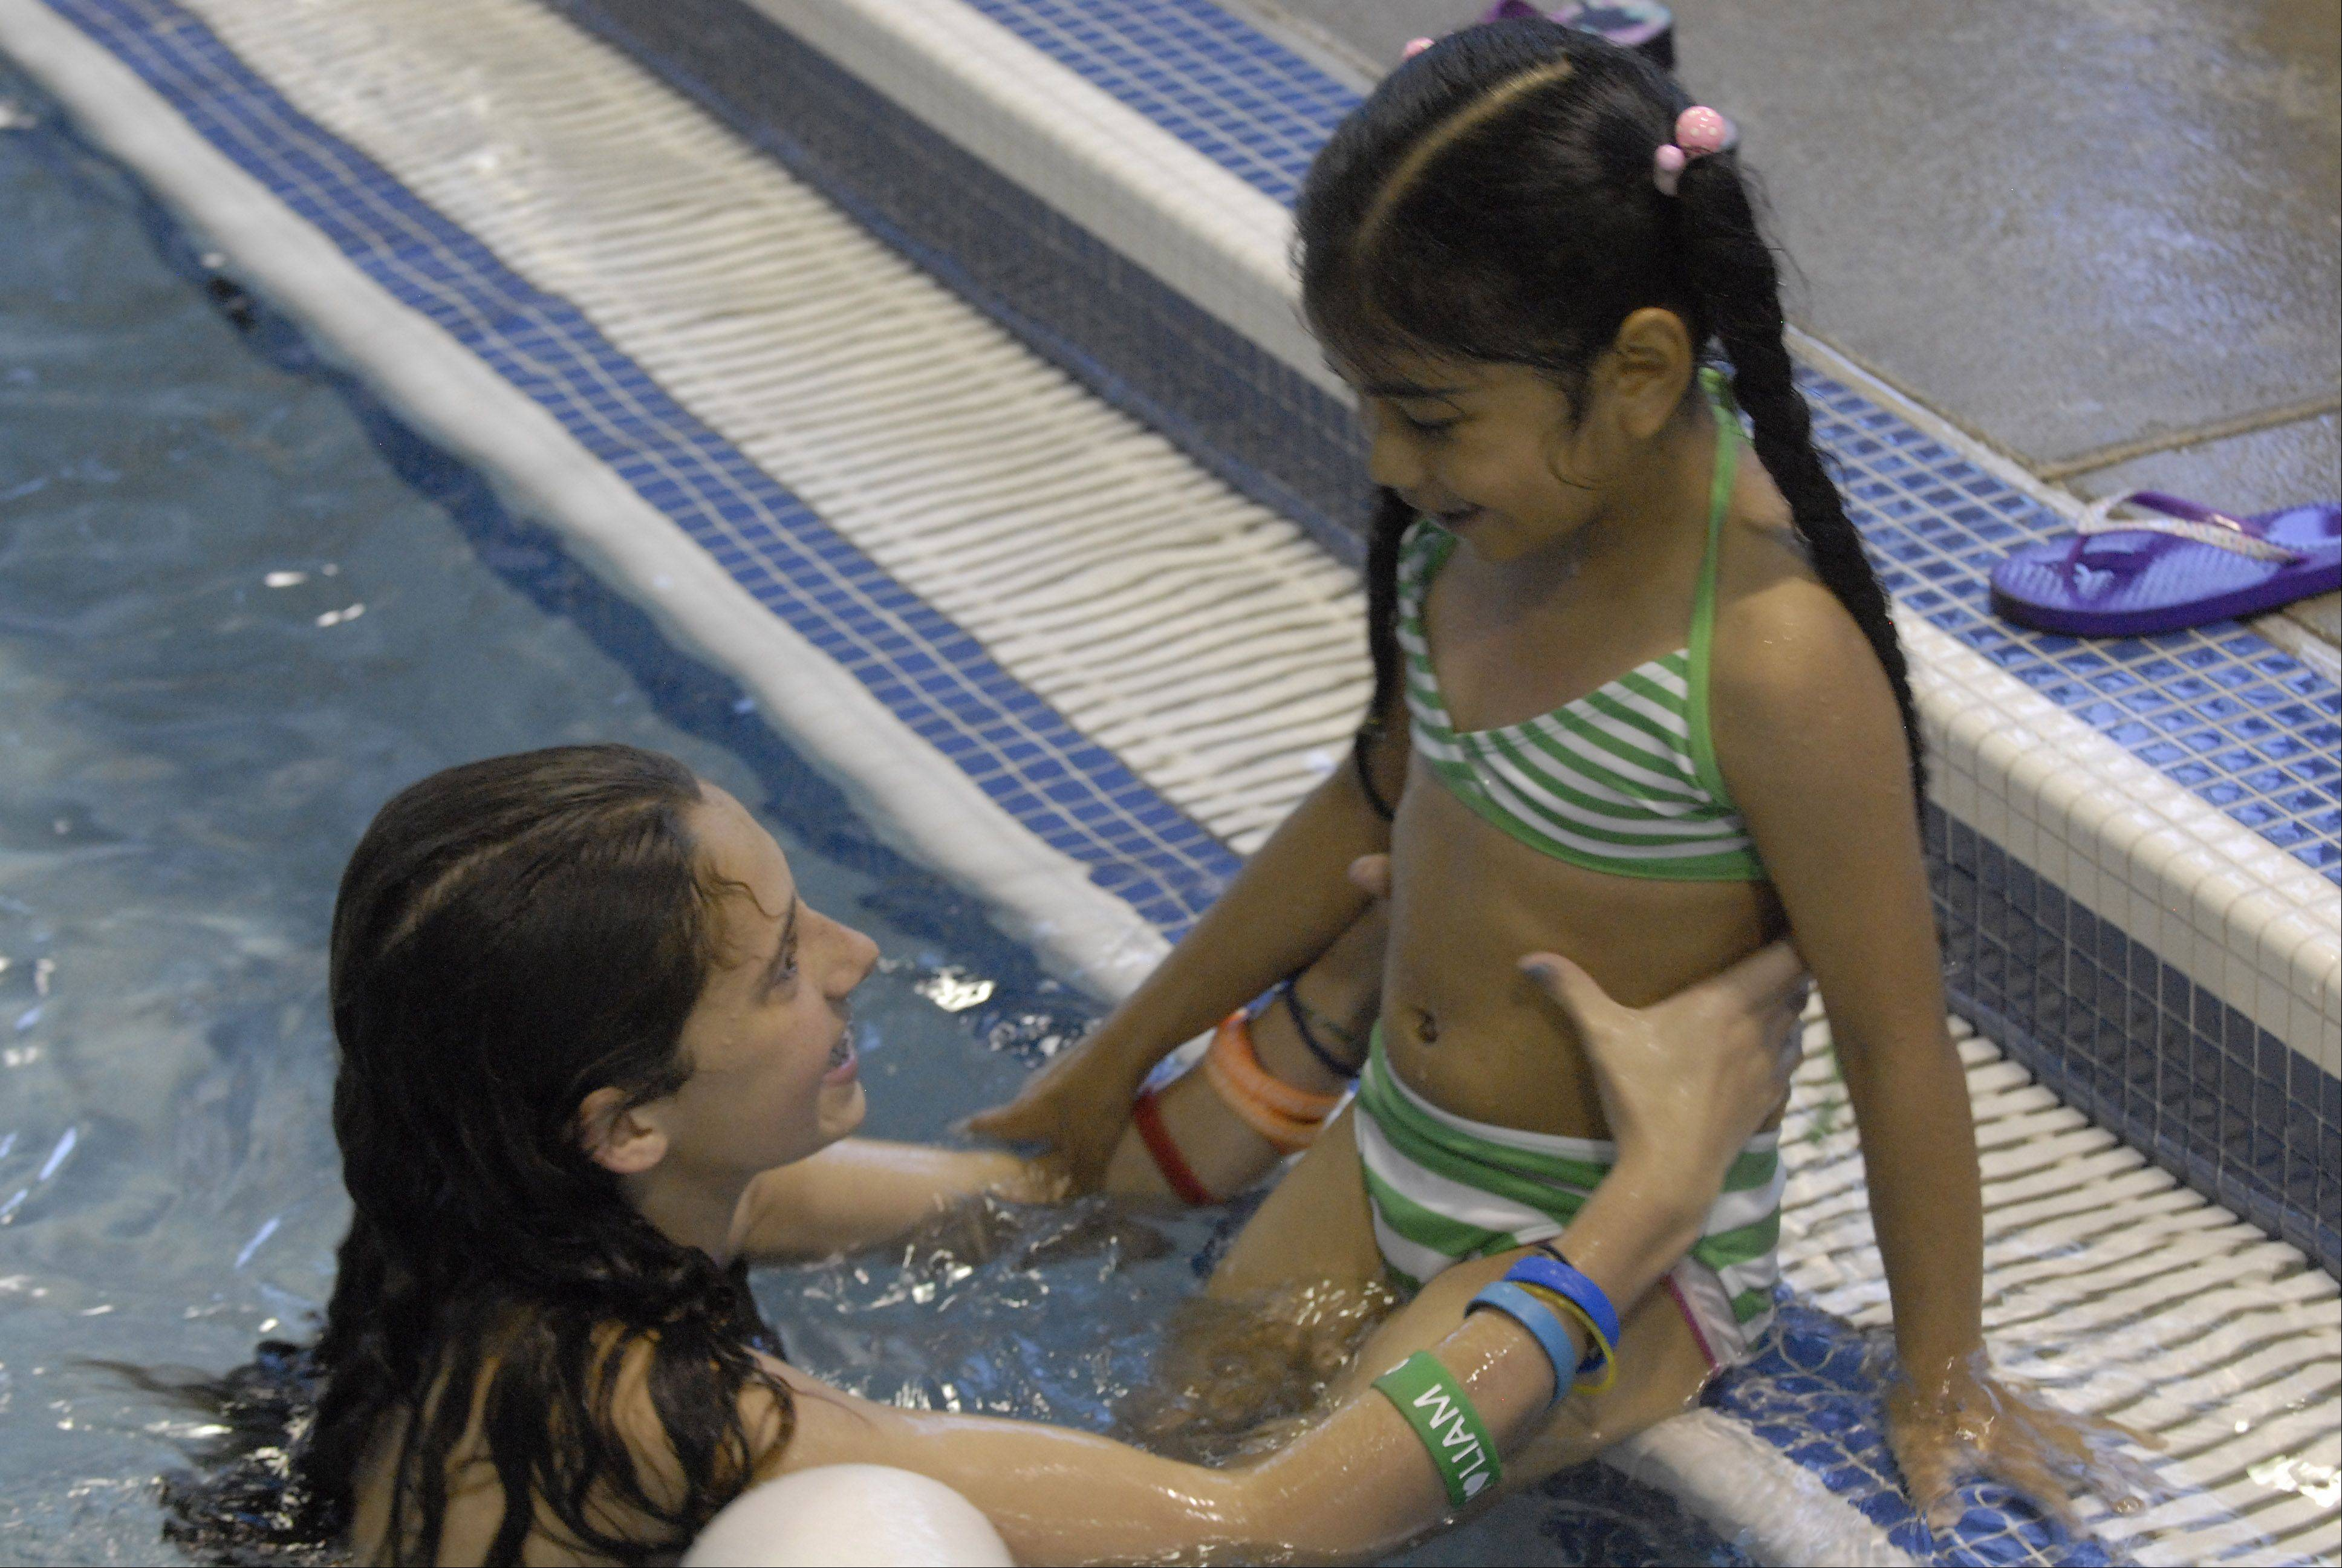 Jenna Cohn, whose brother, Zachary, died in a pool drain accident, helps Perla Maria Saldivar into the Wheeling pool.